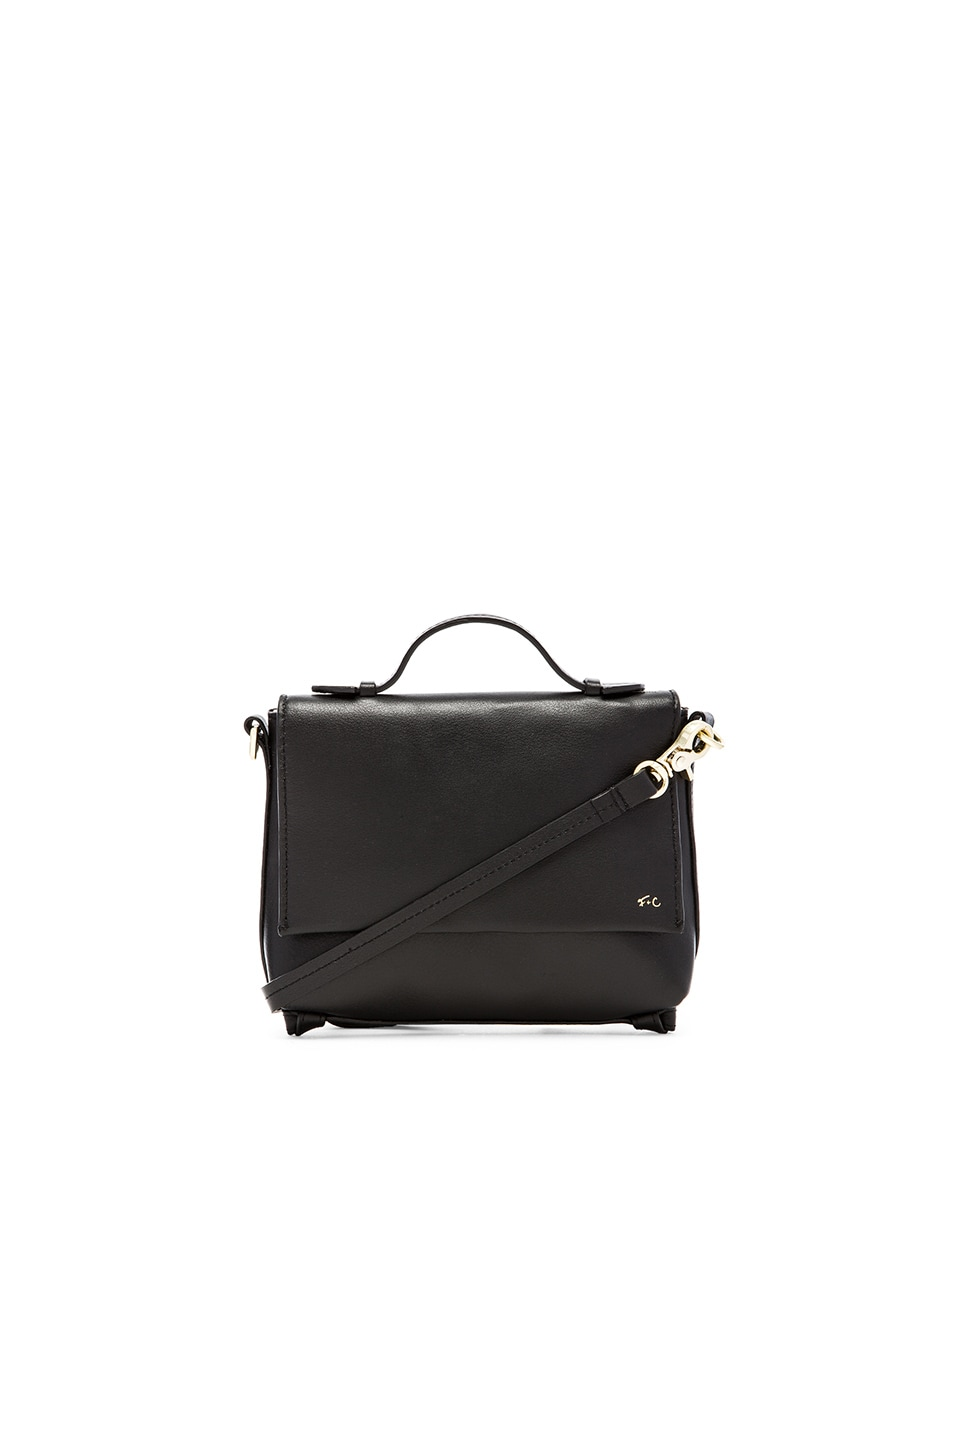 Foley + Corinna Gigi Flap Crossbody in Black